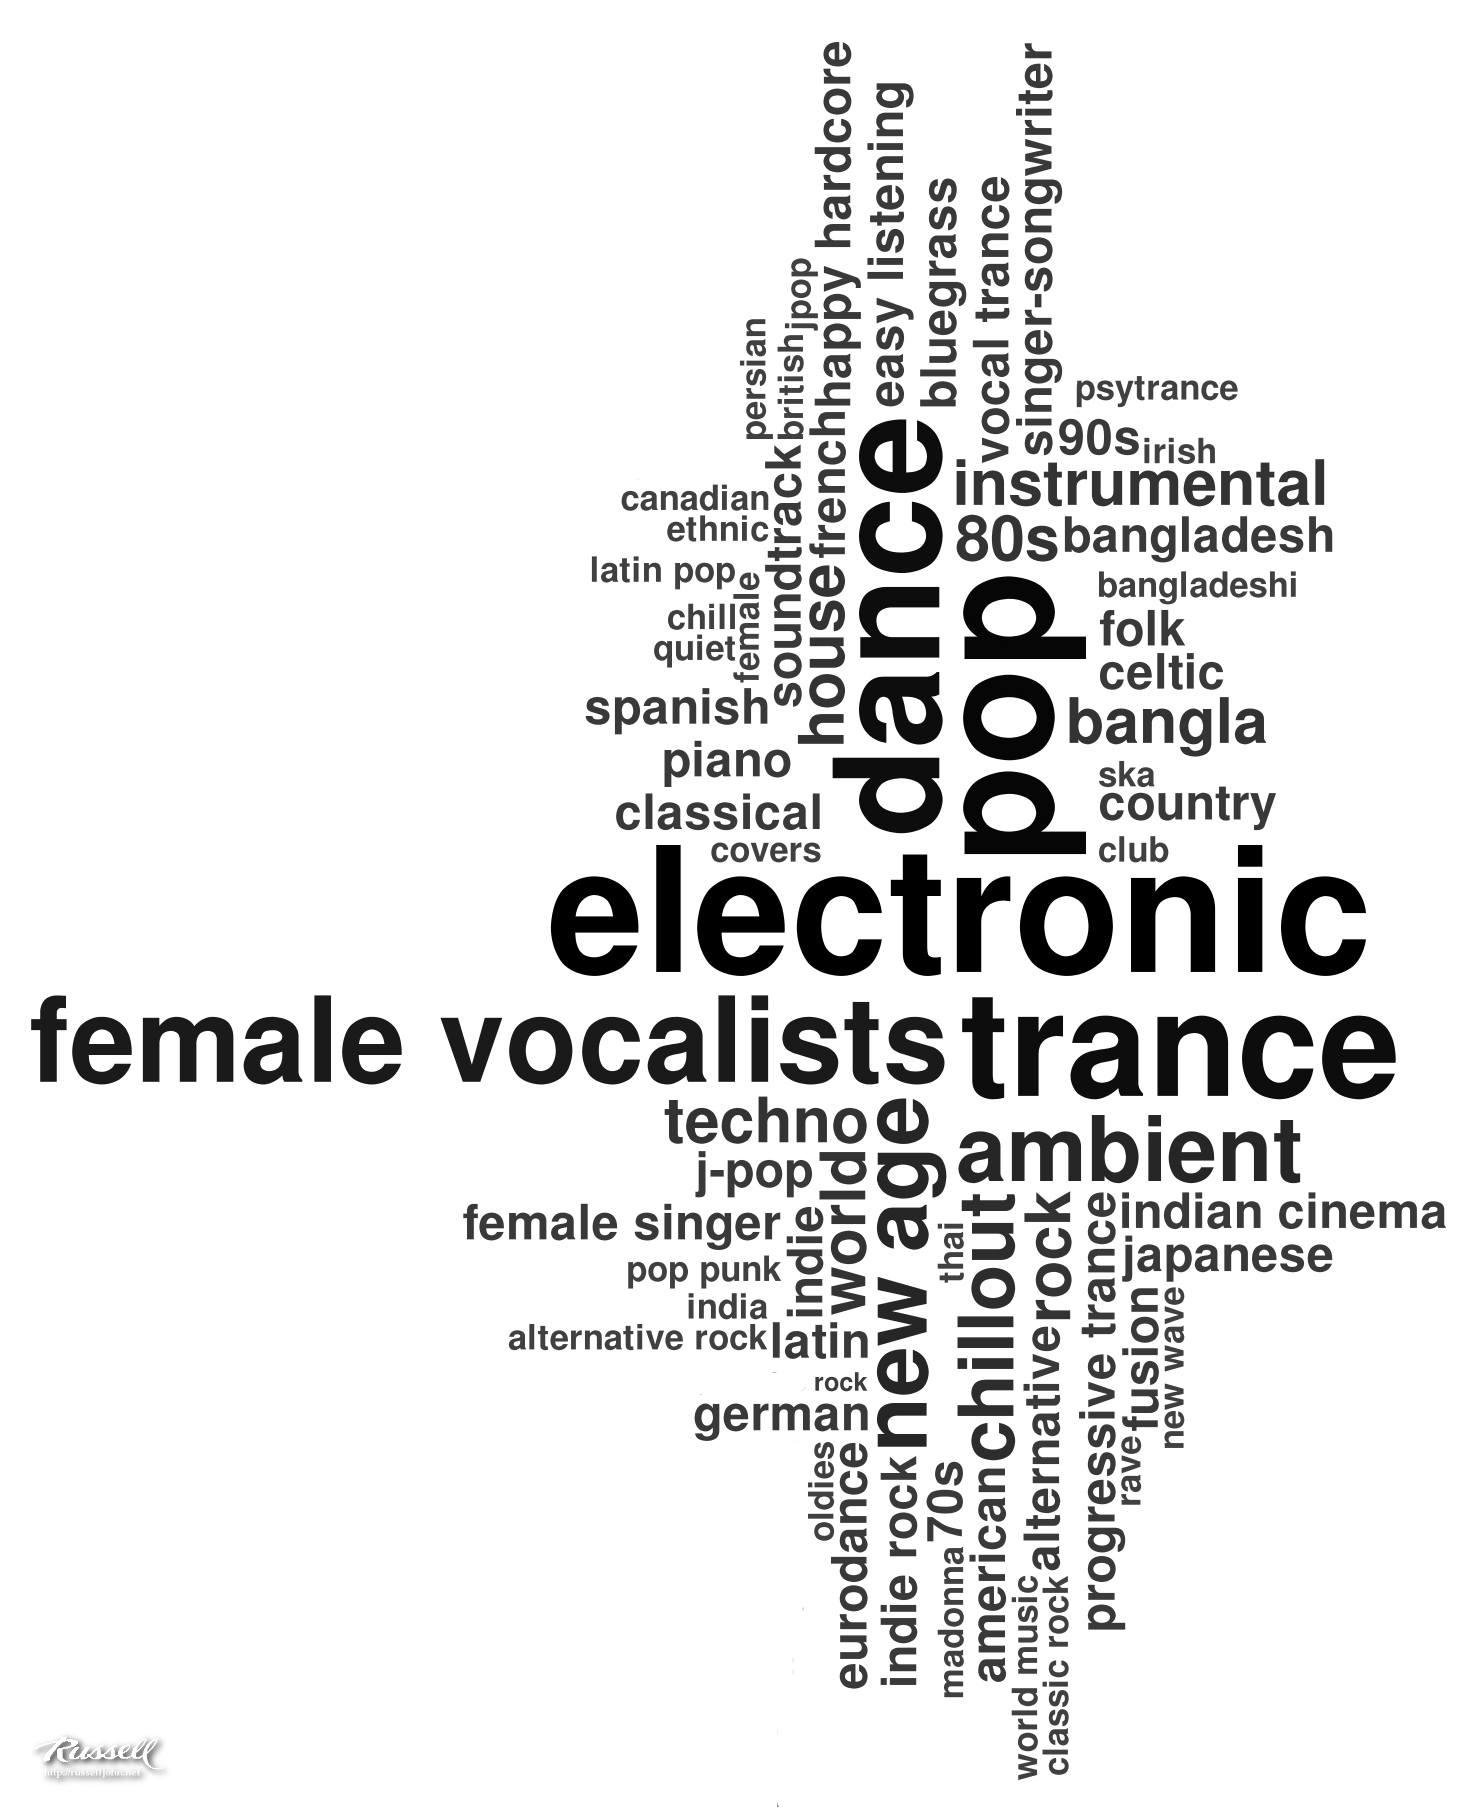 My Favourite Music Genre Tag Cloud